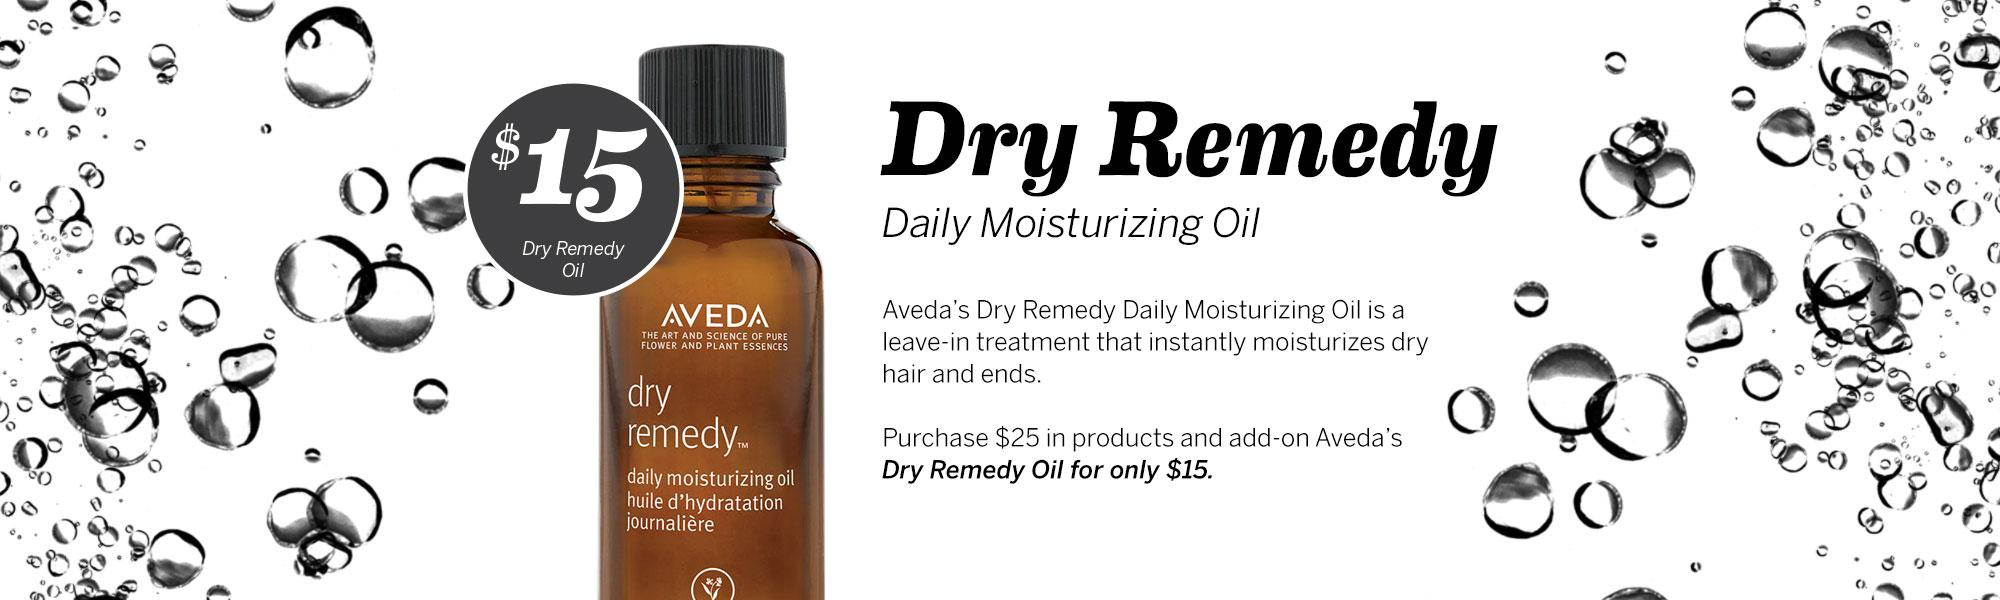 $15 Dry Remedy Daily Moisturizing Oil, Dosha Salon Spa